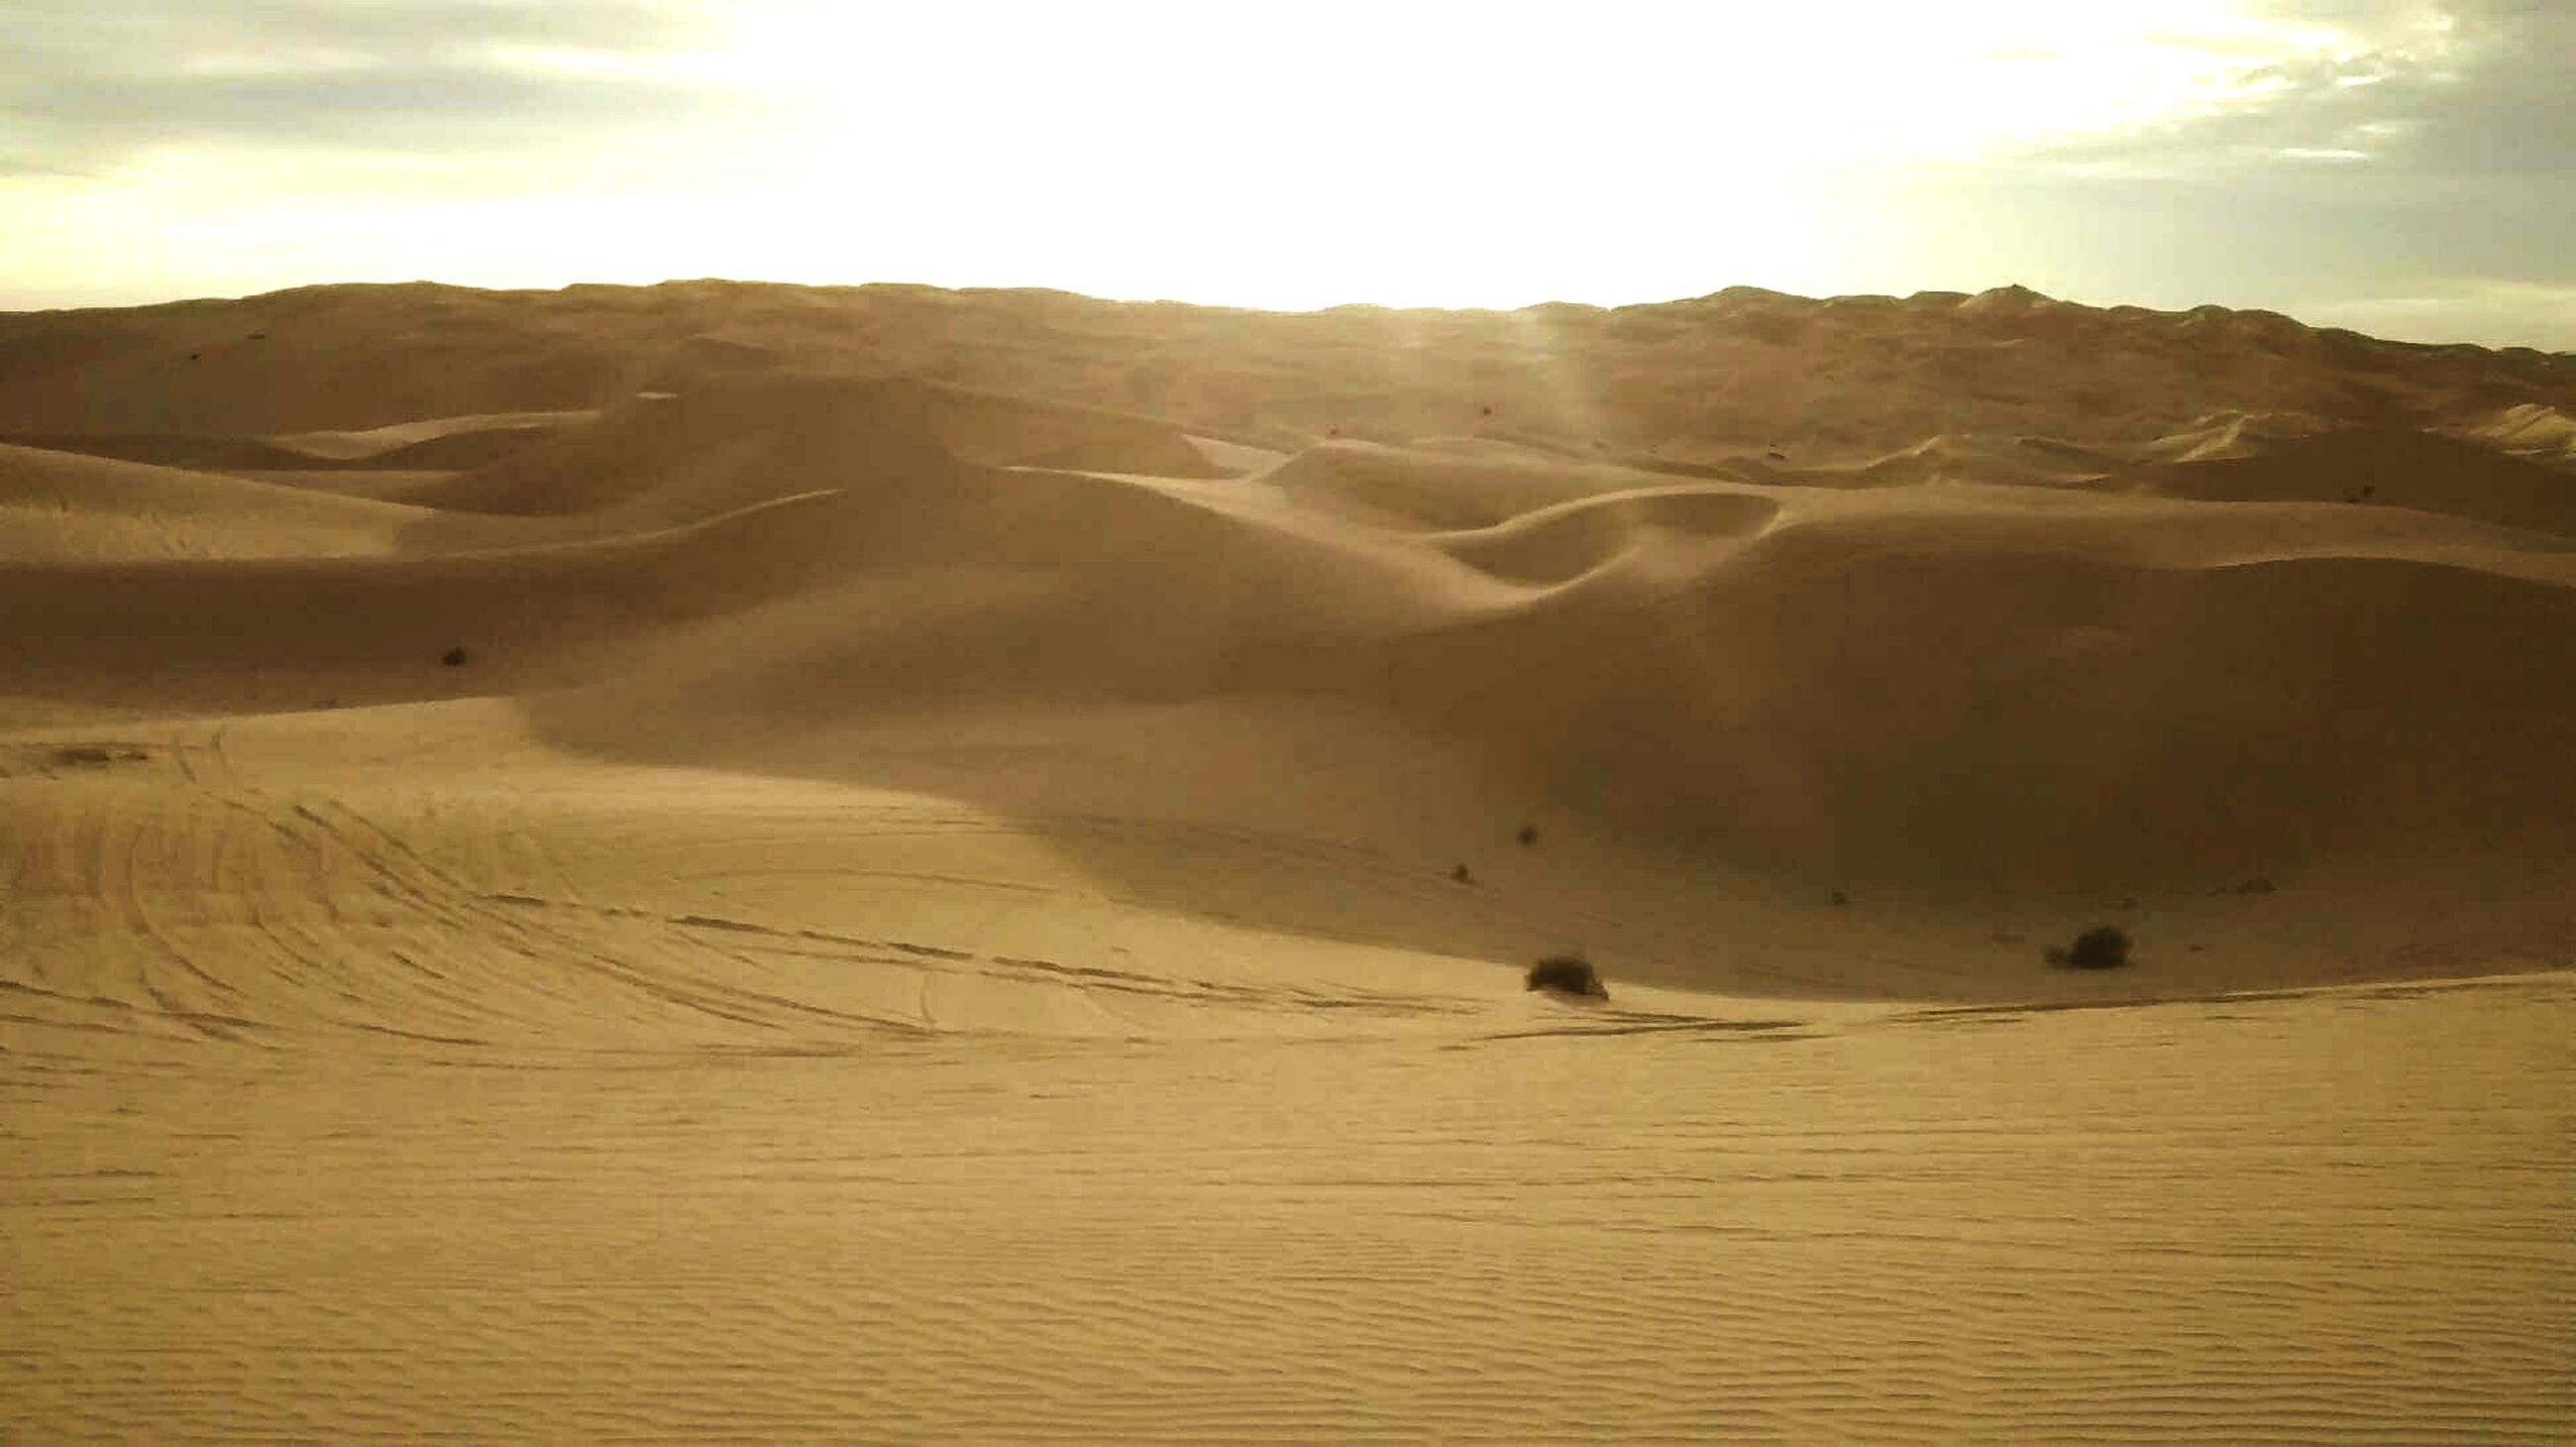 arid climate, desert, tranquil scene, landscape, tranquility, sand dune, sand, scenics, beauty in nature, nature, sky, physical geography, extreme terrain, mountain, sunlight, non-urban scene, barren, geology, remote, rock formation